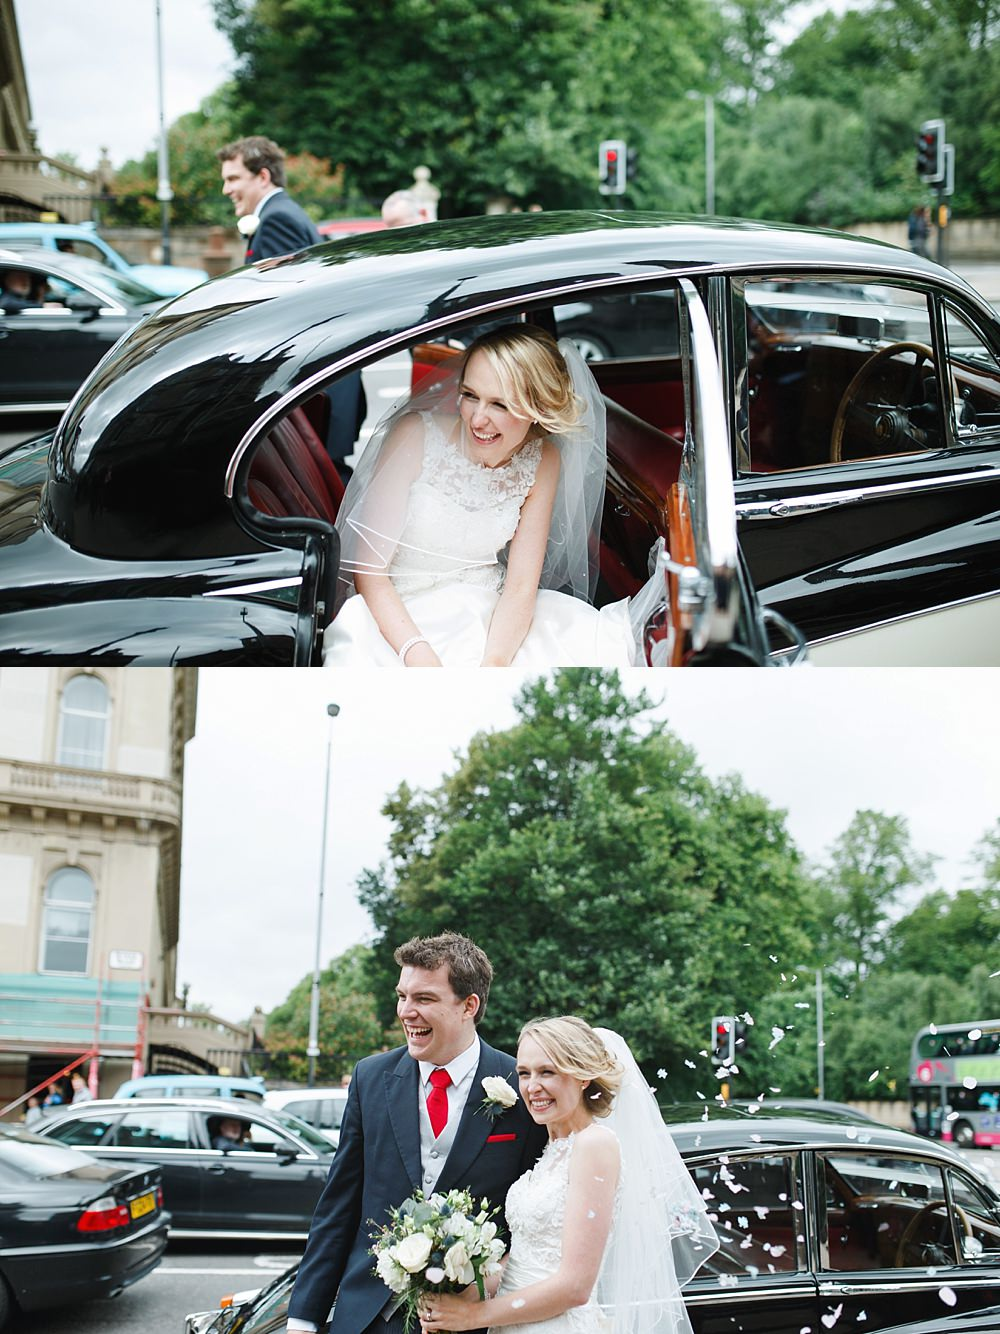 natural wedding photographers glasgow 8-29.jpg